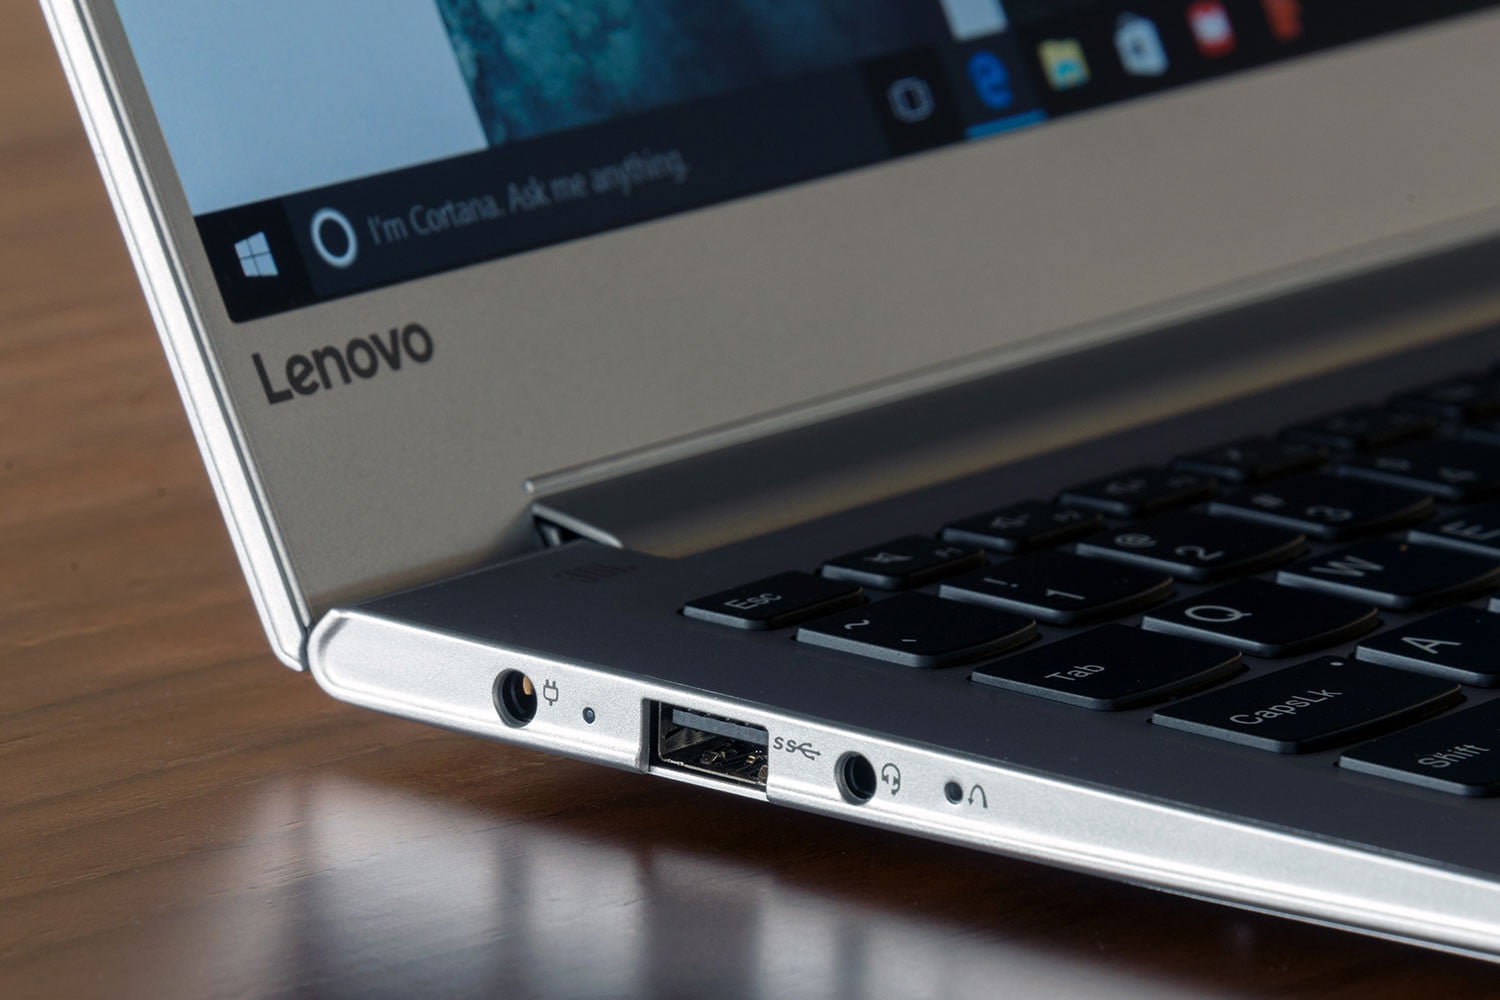 Lenovo Laptop Lenovo Ideapad 710s Review Digital Trends